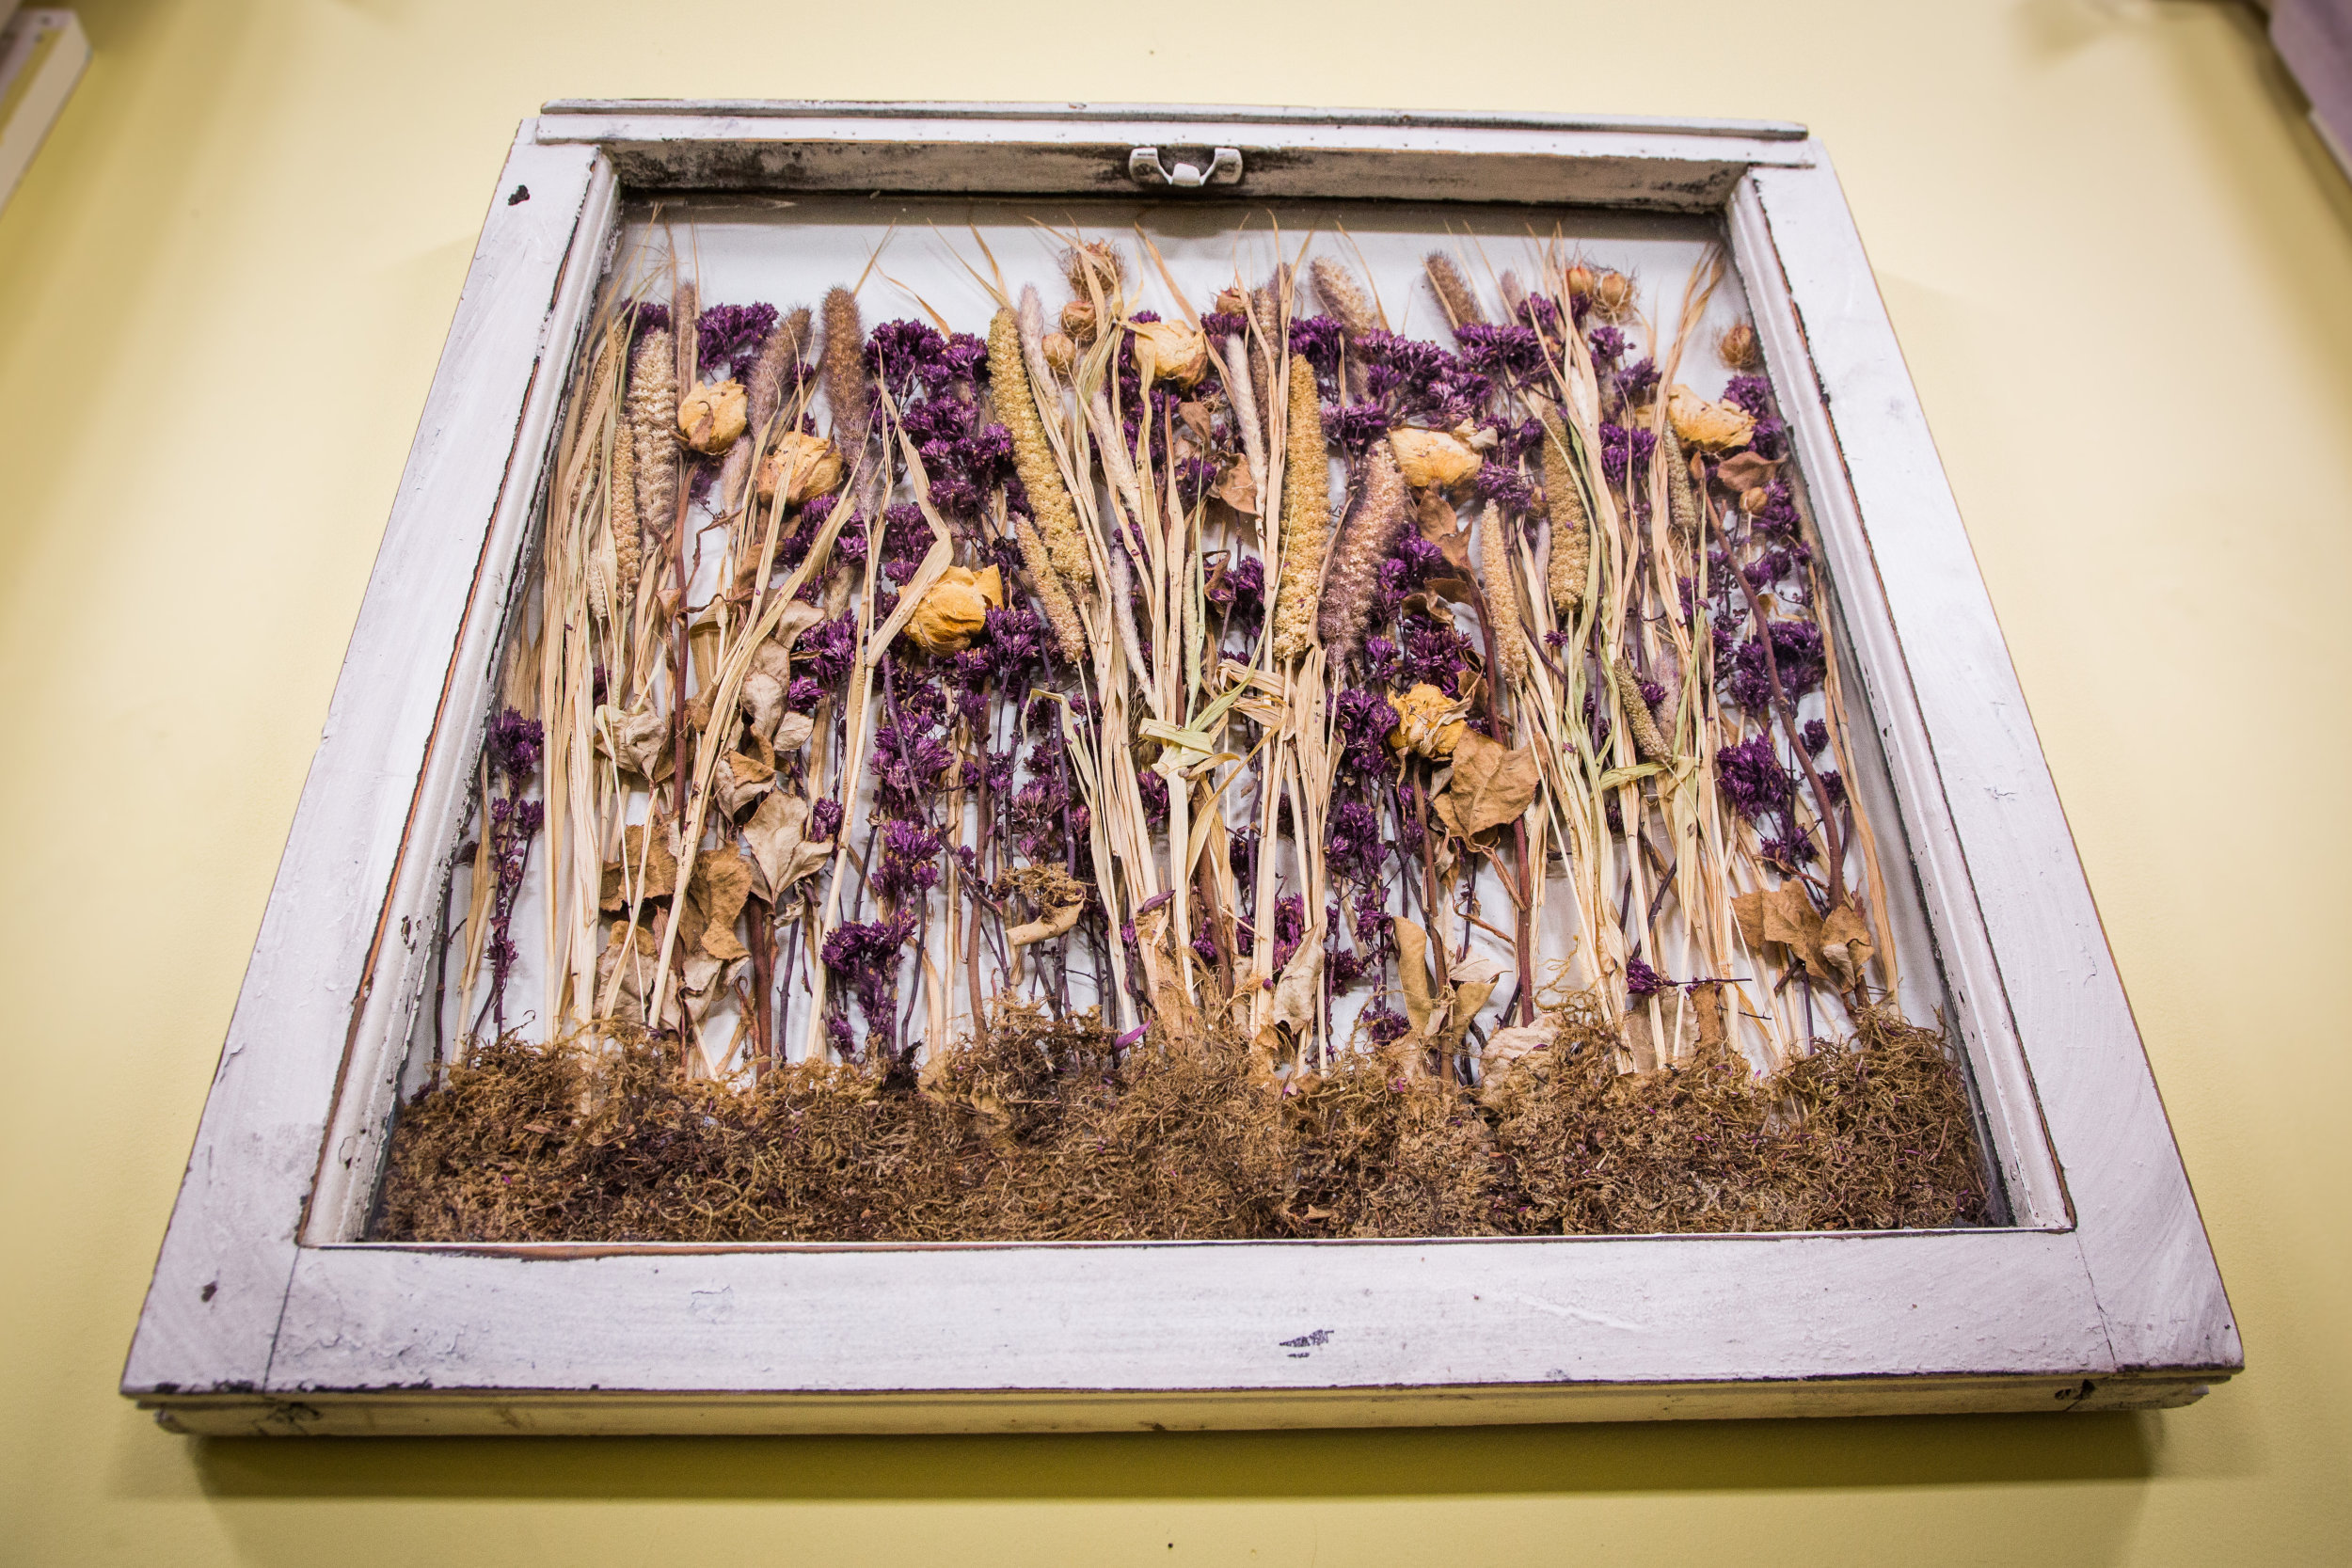 Drying And Preserving Flowers With Silica Gel Home Family